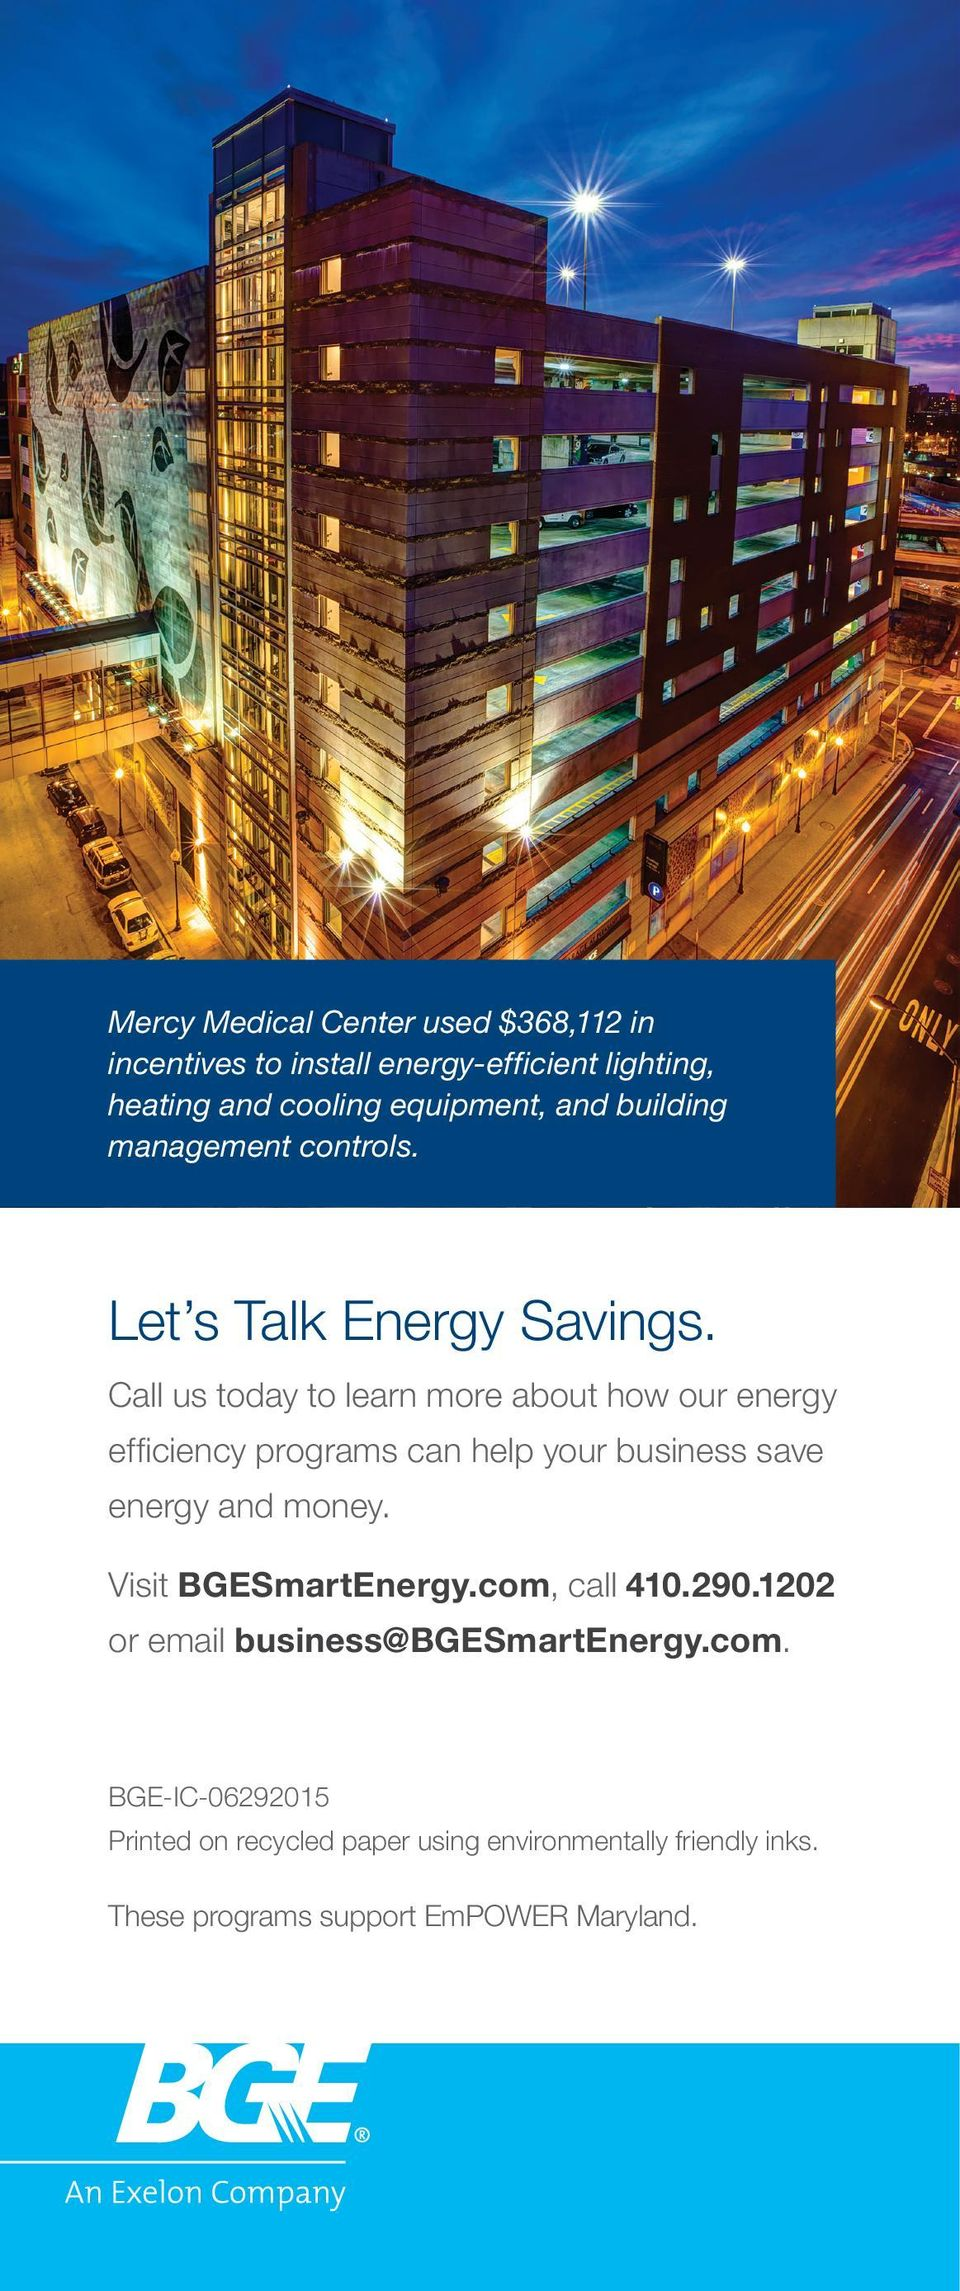 Call us today to learn more about how our energy efficiency programs can help your business save energy and money.